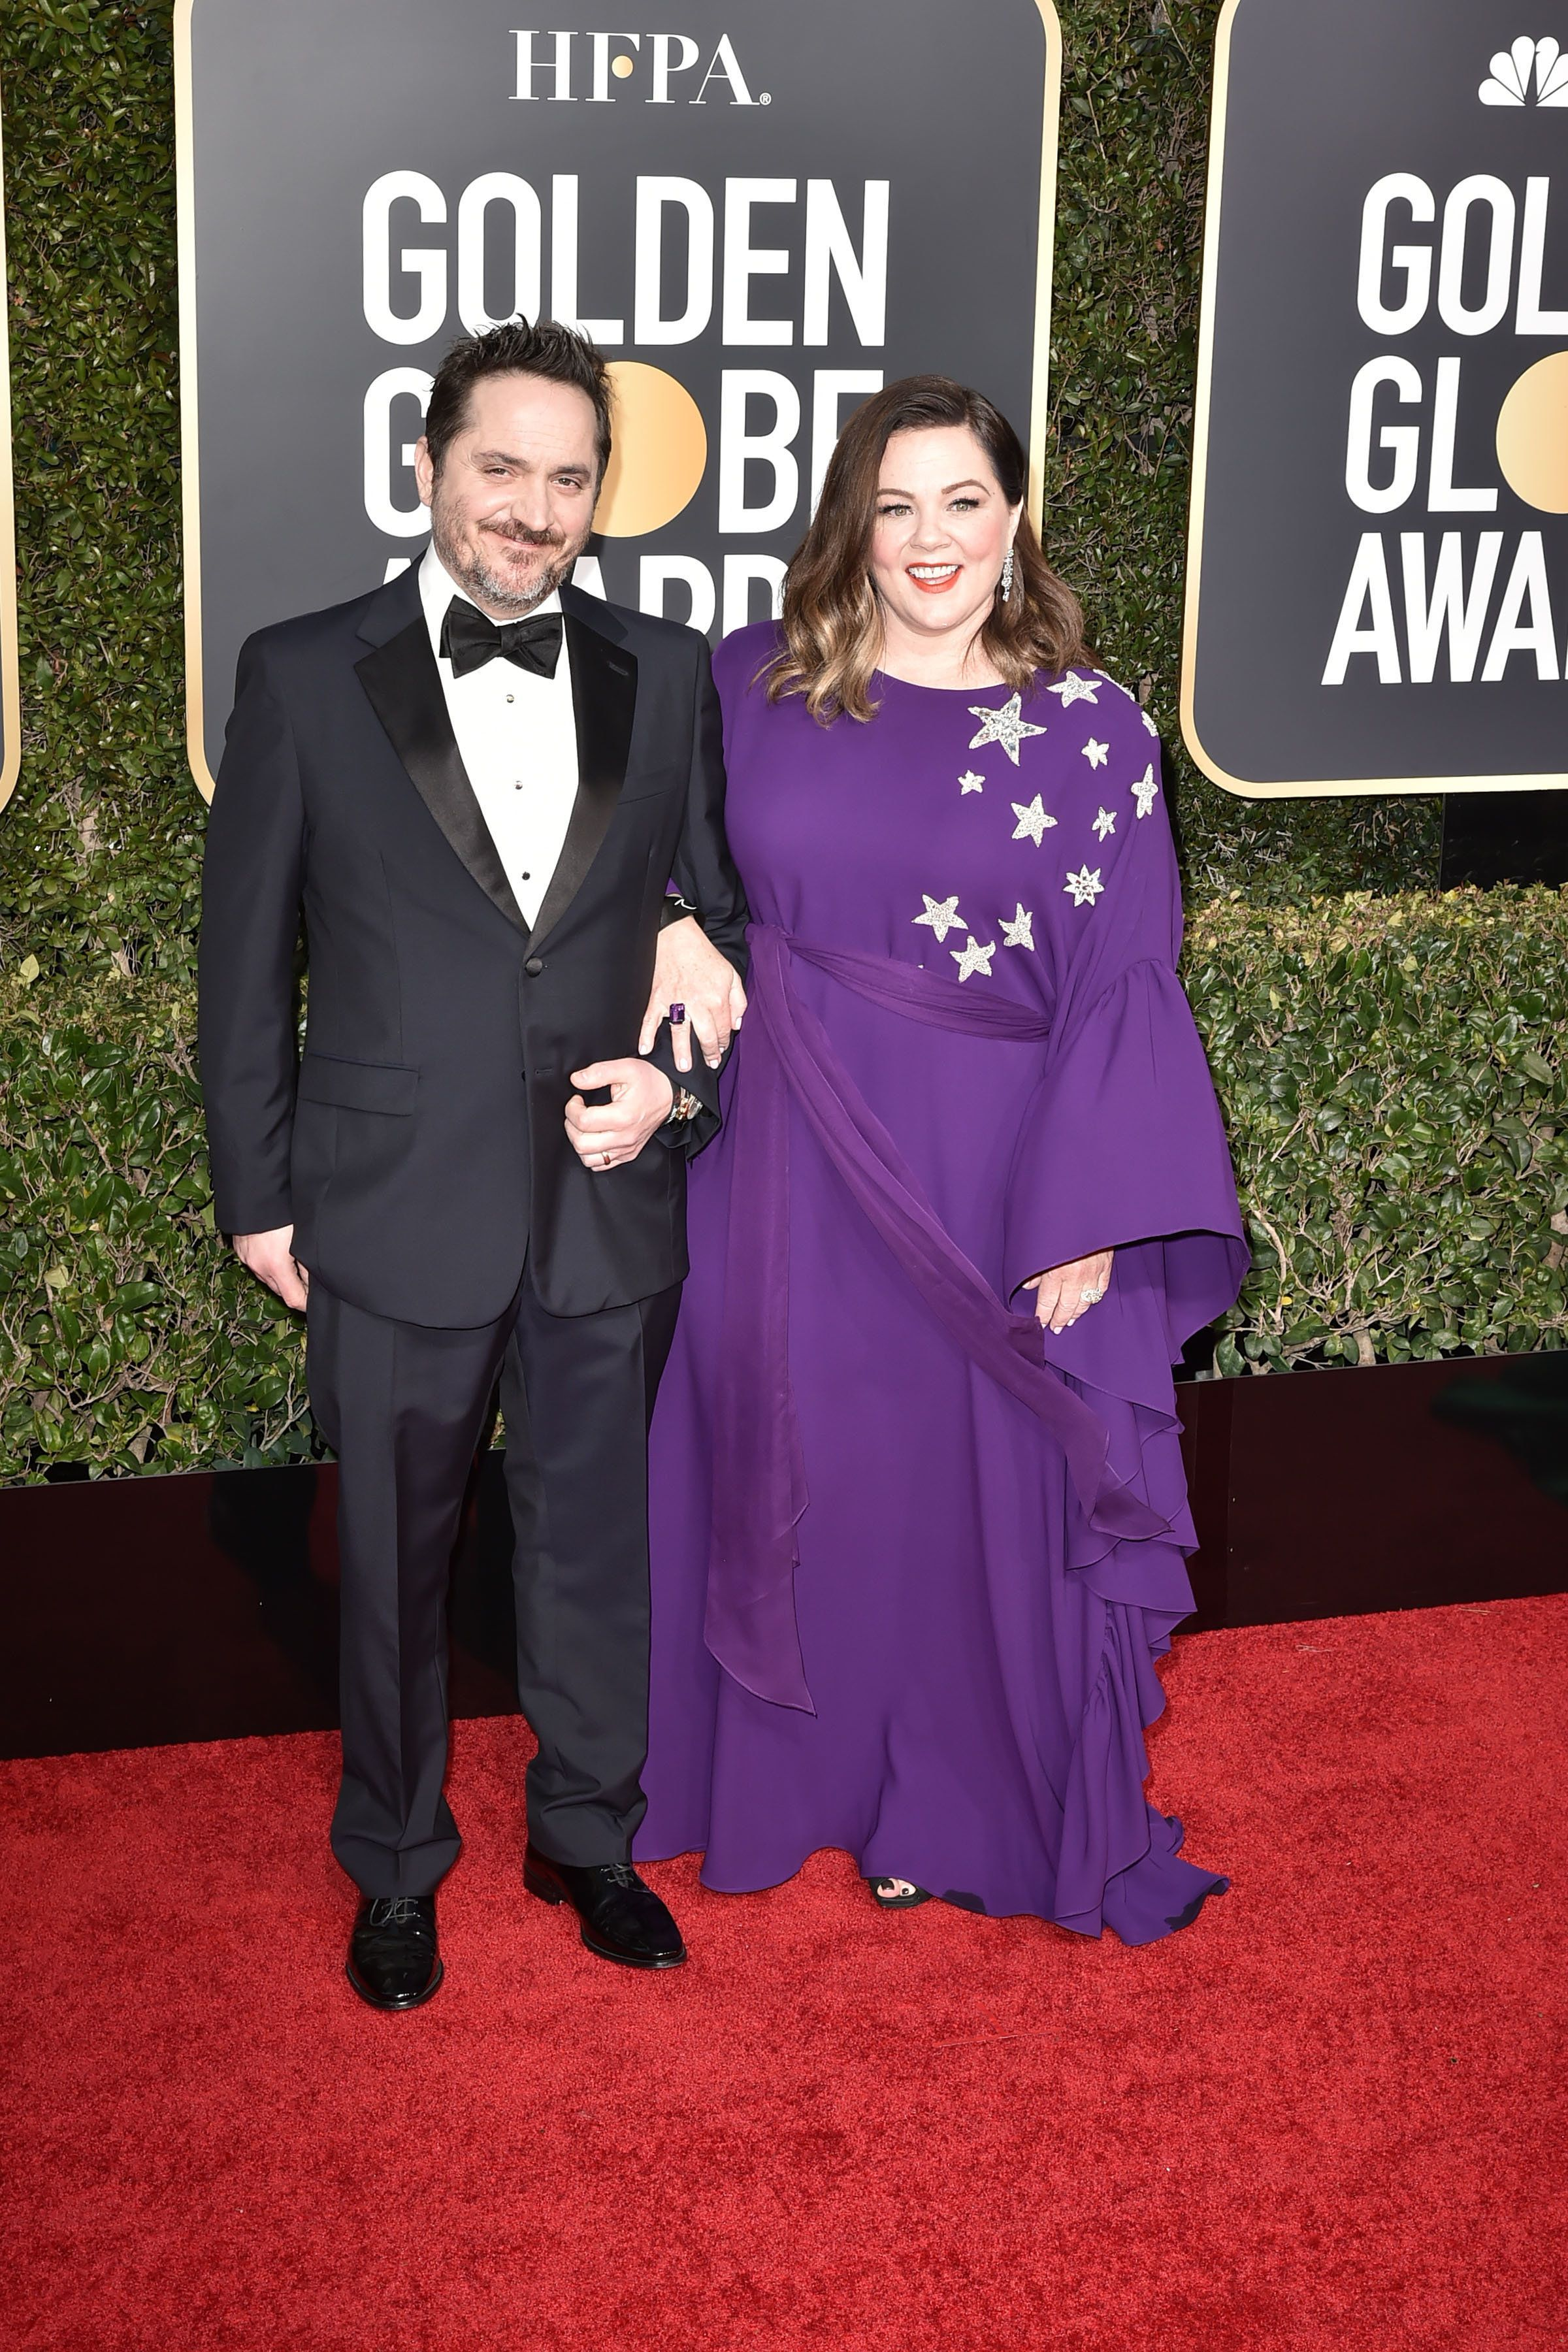 Ben Falcone and Melissa McCarthy arrive at the 76th annual Golden Globe Awards on Sunday.